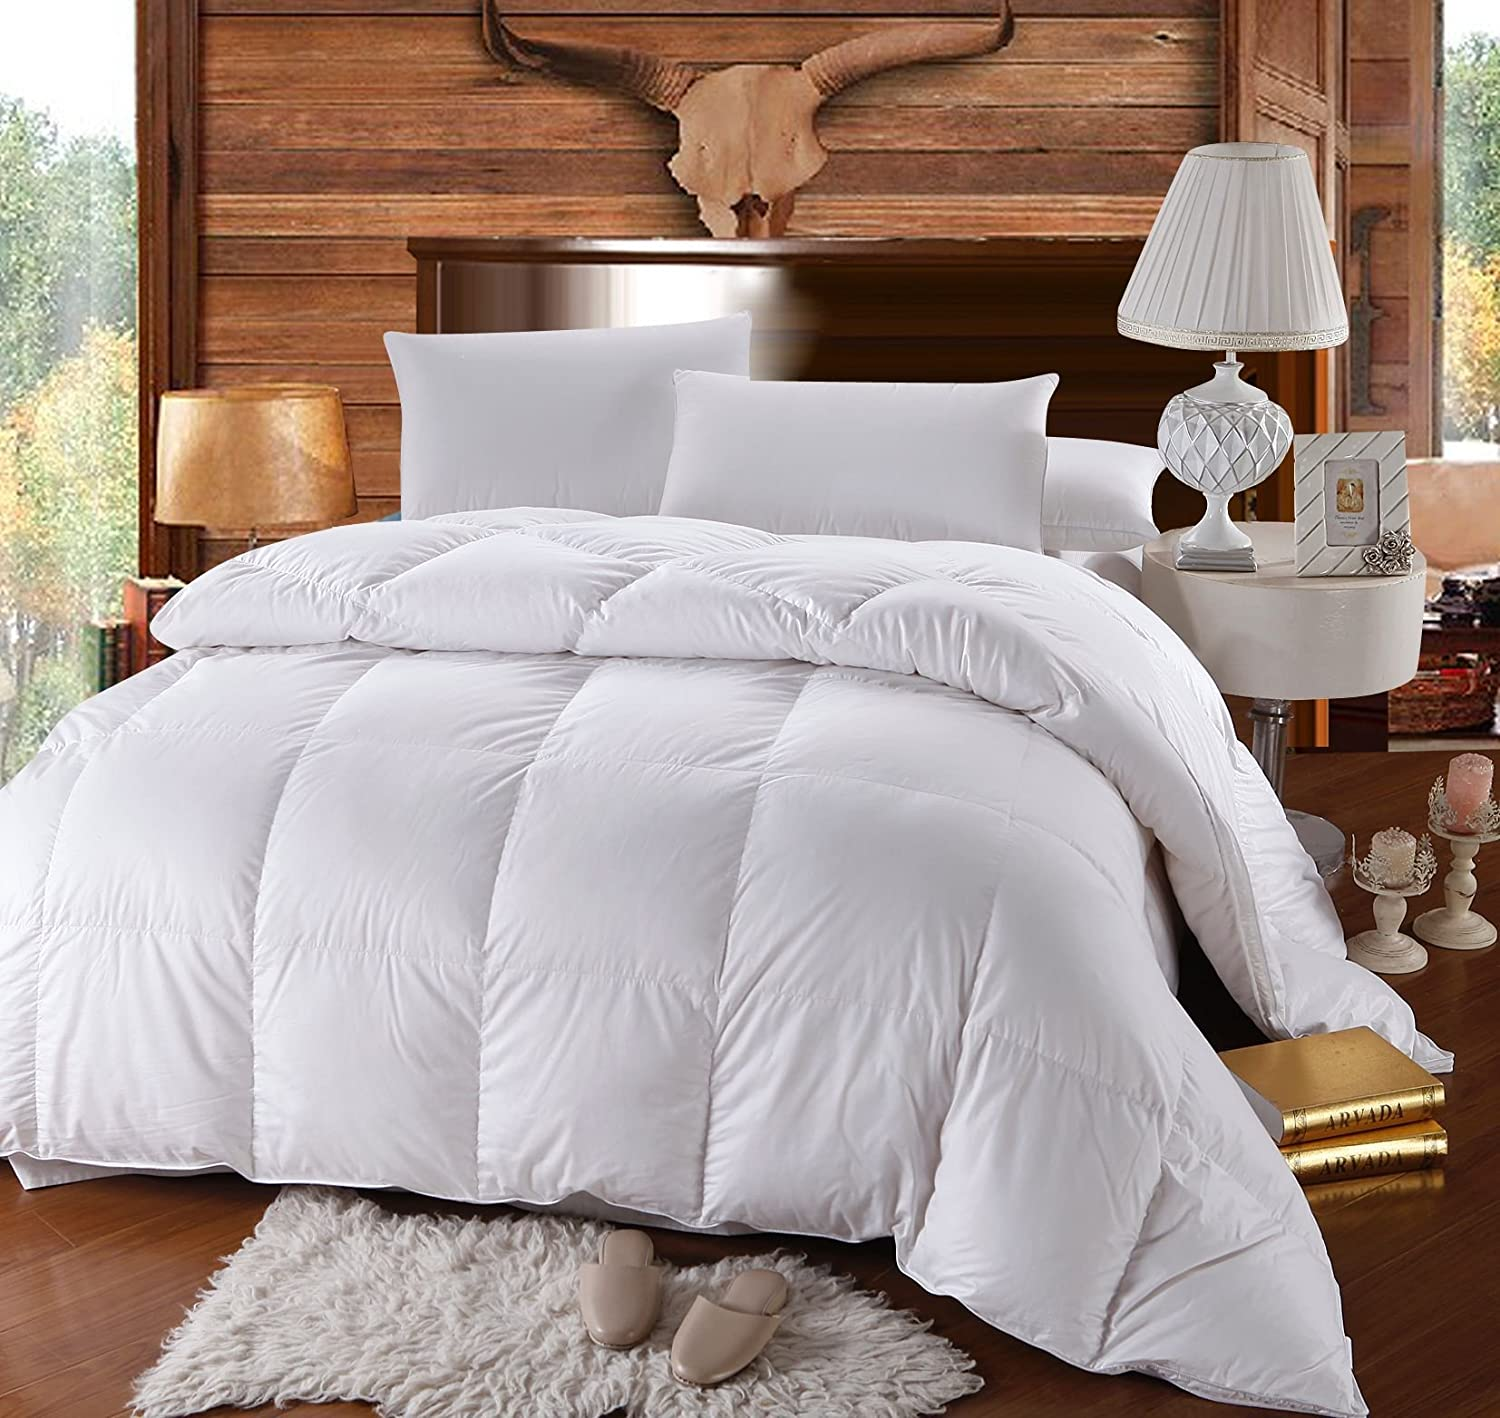 amazoncom size siberian goose down comforter 100 percent cotton 500 tc 750fp 60oz solid white home